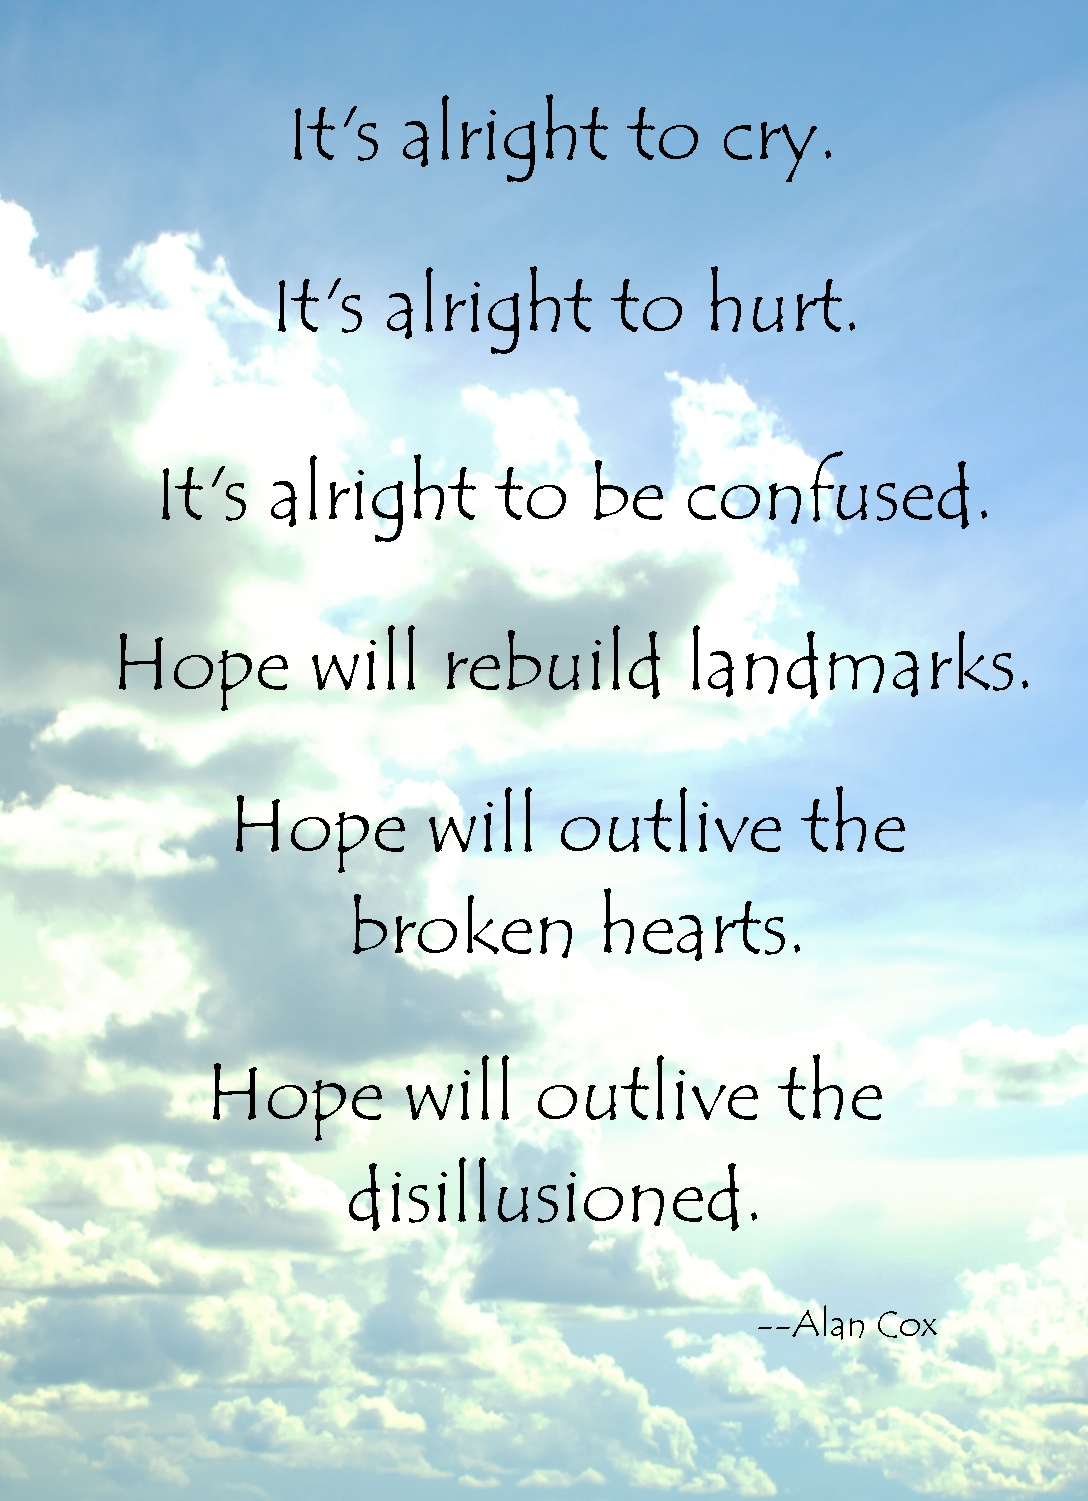 Quotes About Mourning Quotes For A Friend Mourning Good Grief What Should I Do For My